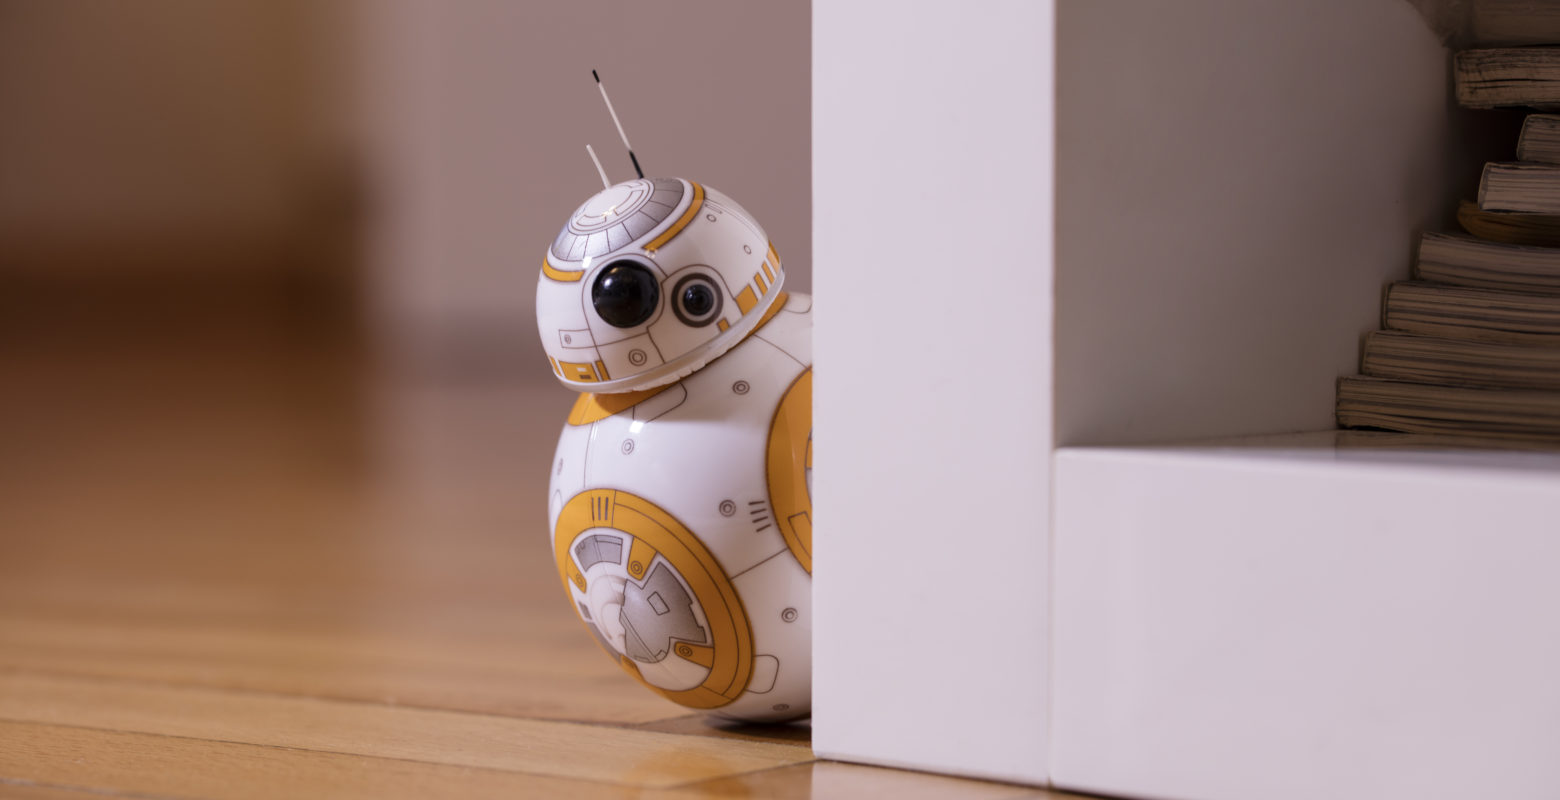 ?stanbul, Turkey - December 12, 2015: Portrait of BB-8 toy hiding behind a bookshelf. New droid of Star Wars movie appearing in The Force Awakens episode. BB-8 toy is produced by Sphero for Lucas Film.